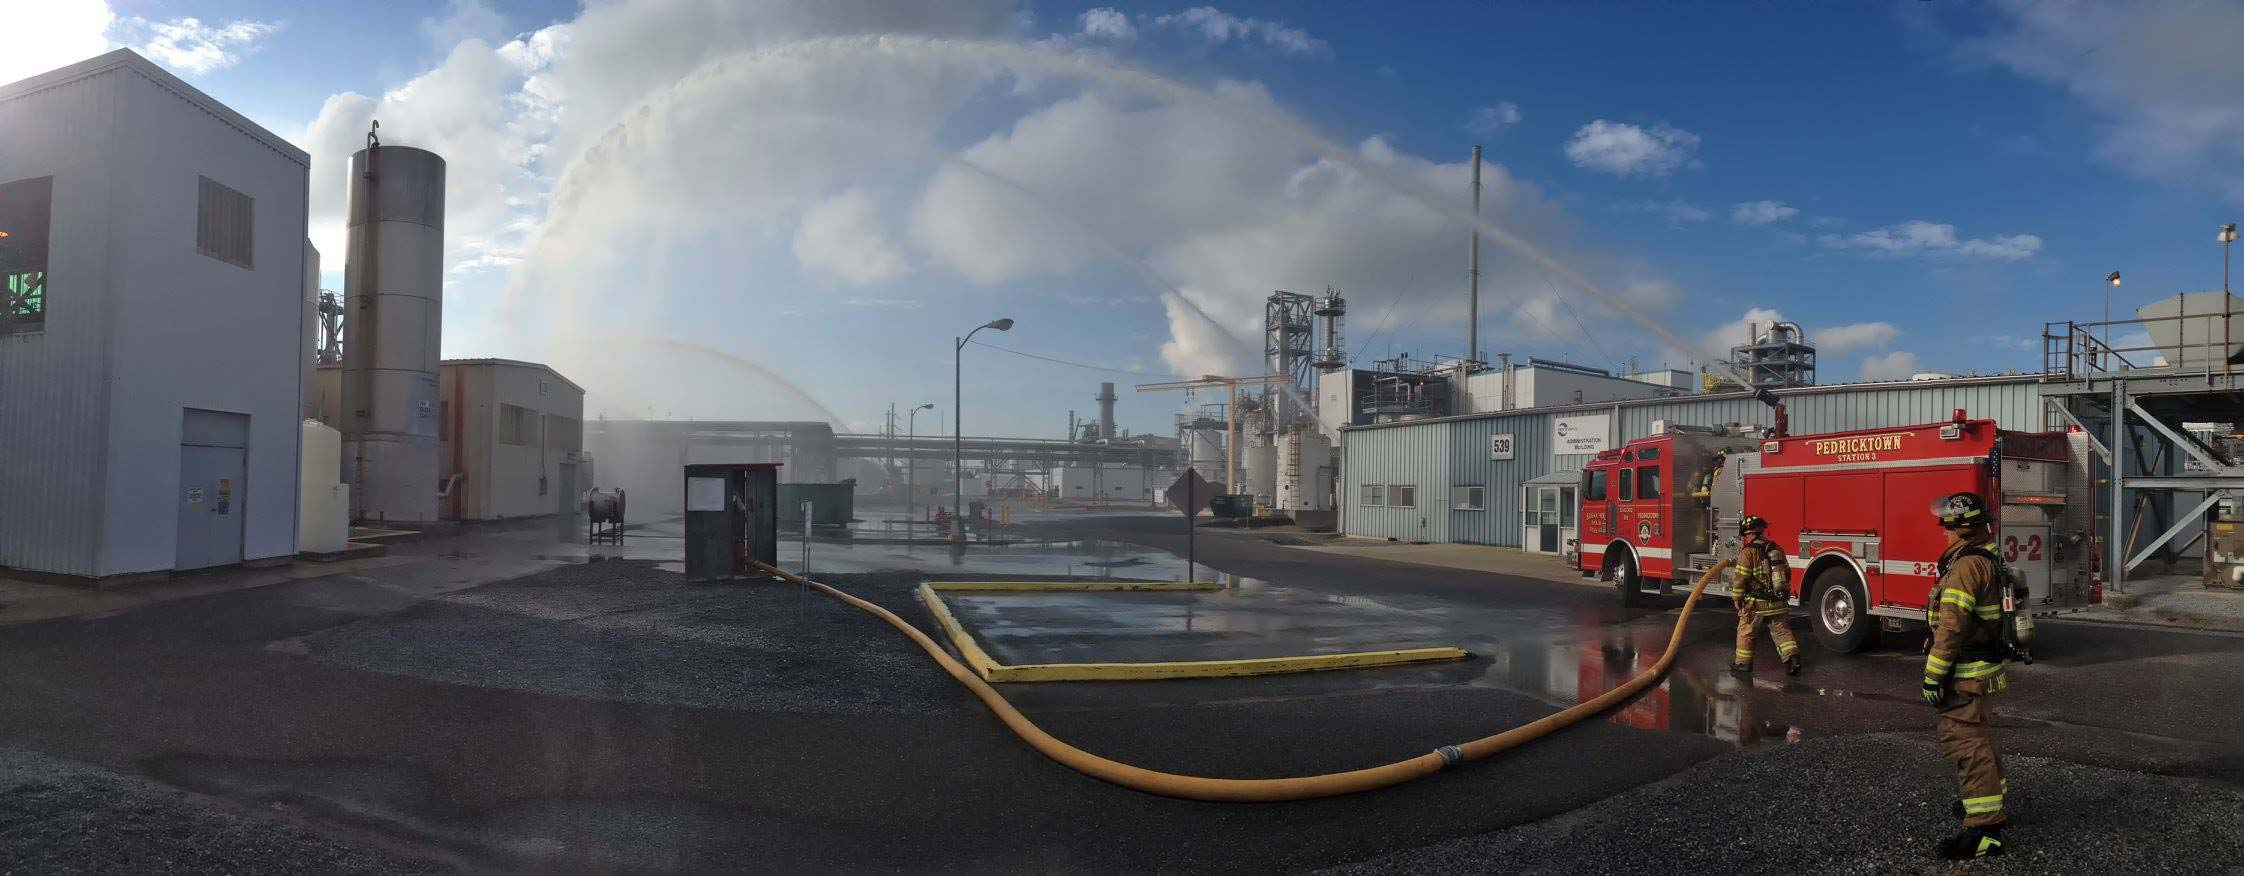 Panoramic image of fire fighters working in an industrial area